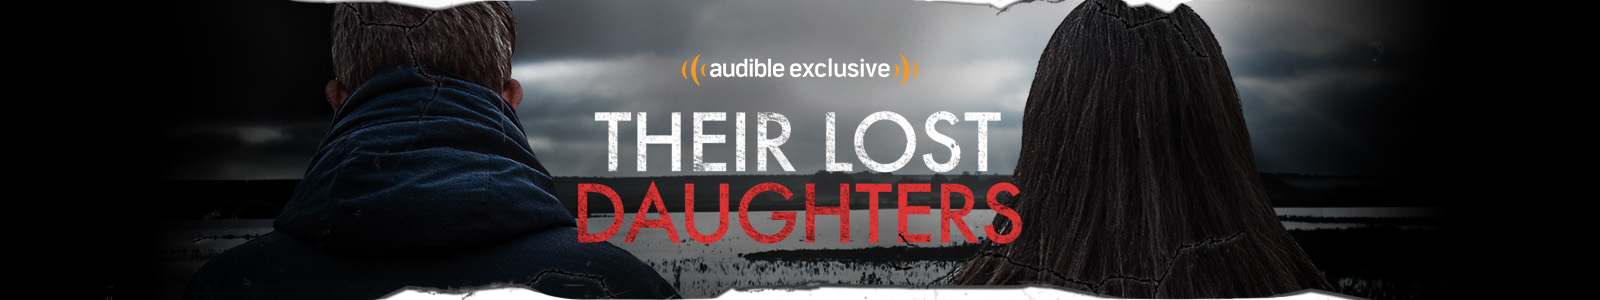 Their Lost Daughters, an Audible Exclusive.